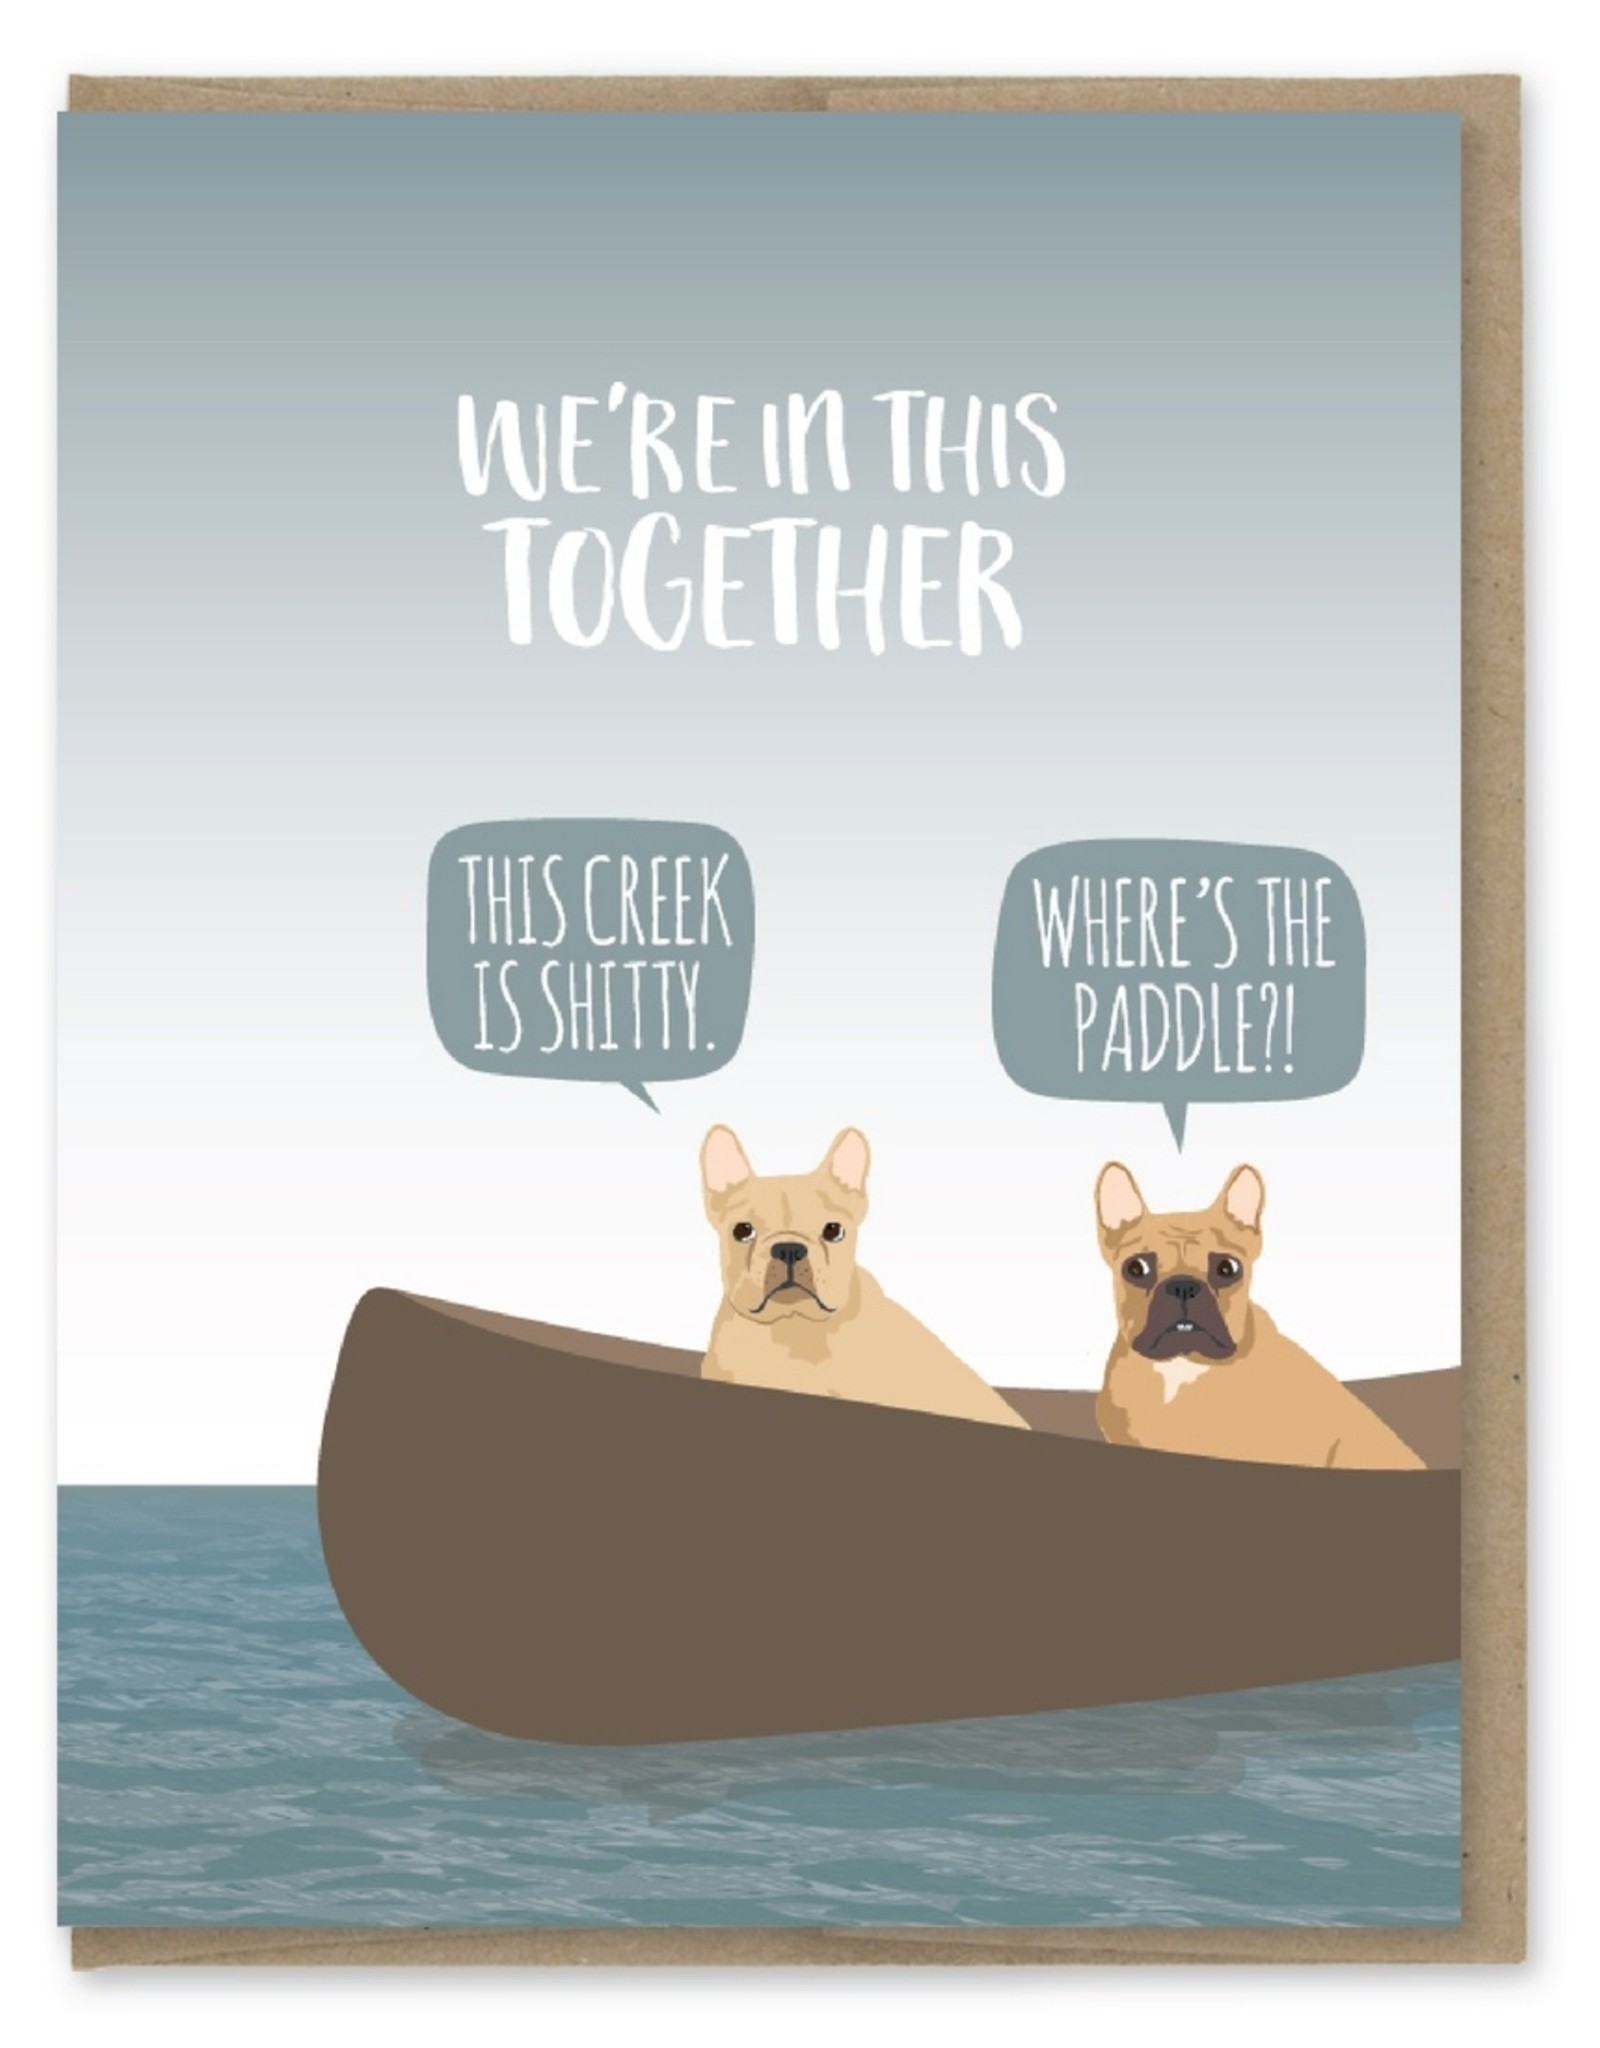 Modern Printed Matter Card - Love: In this together